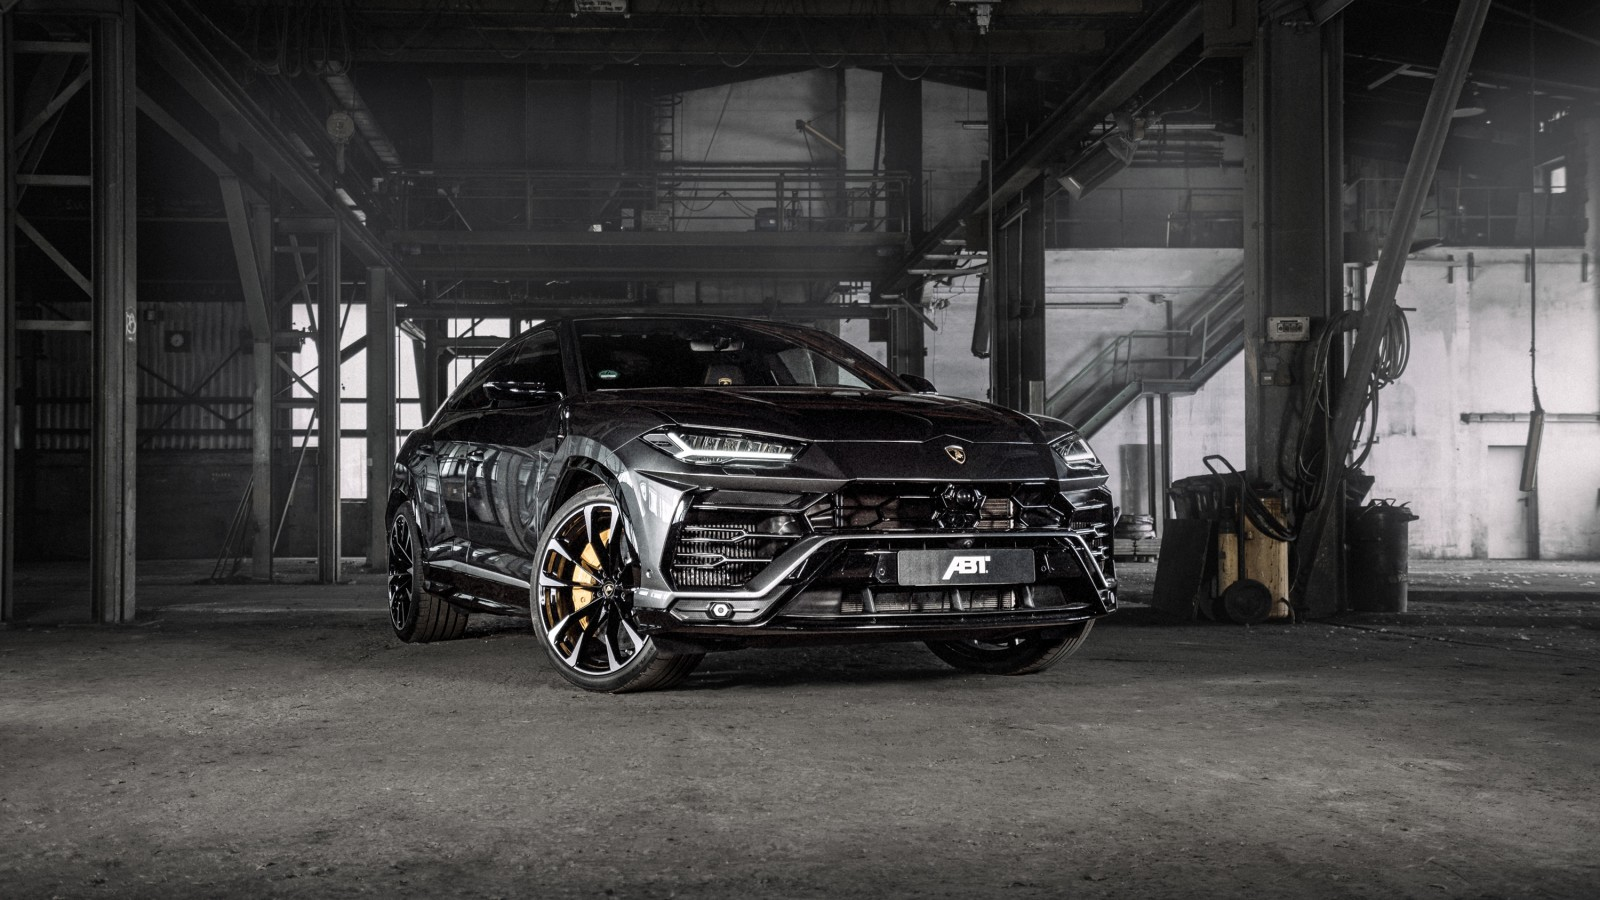 Abt Lamborghini Urus 2019 Wallpaper Hd Car Wallpapers